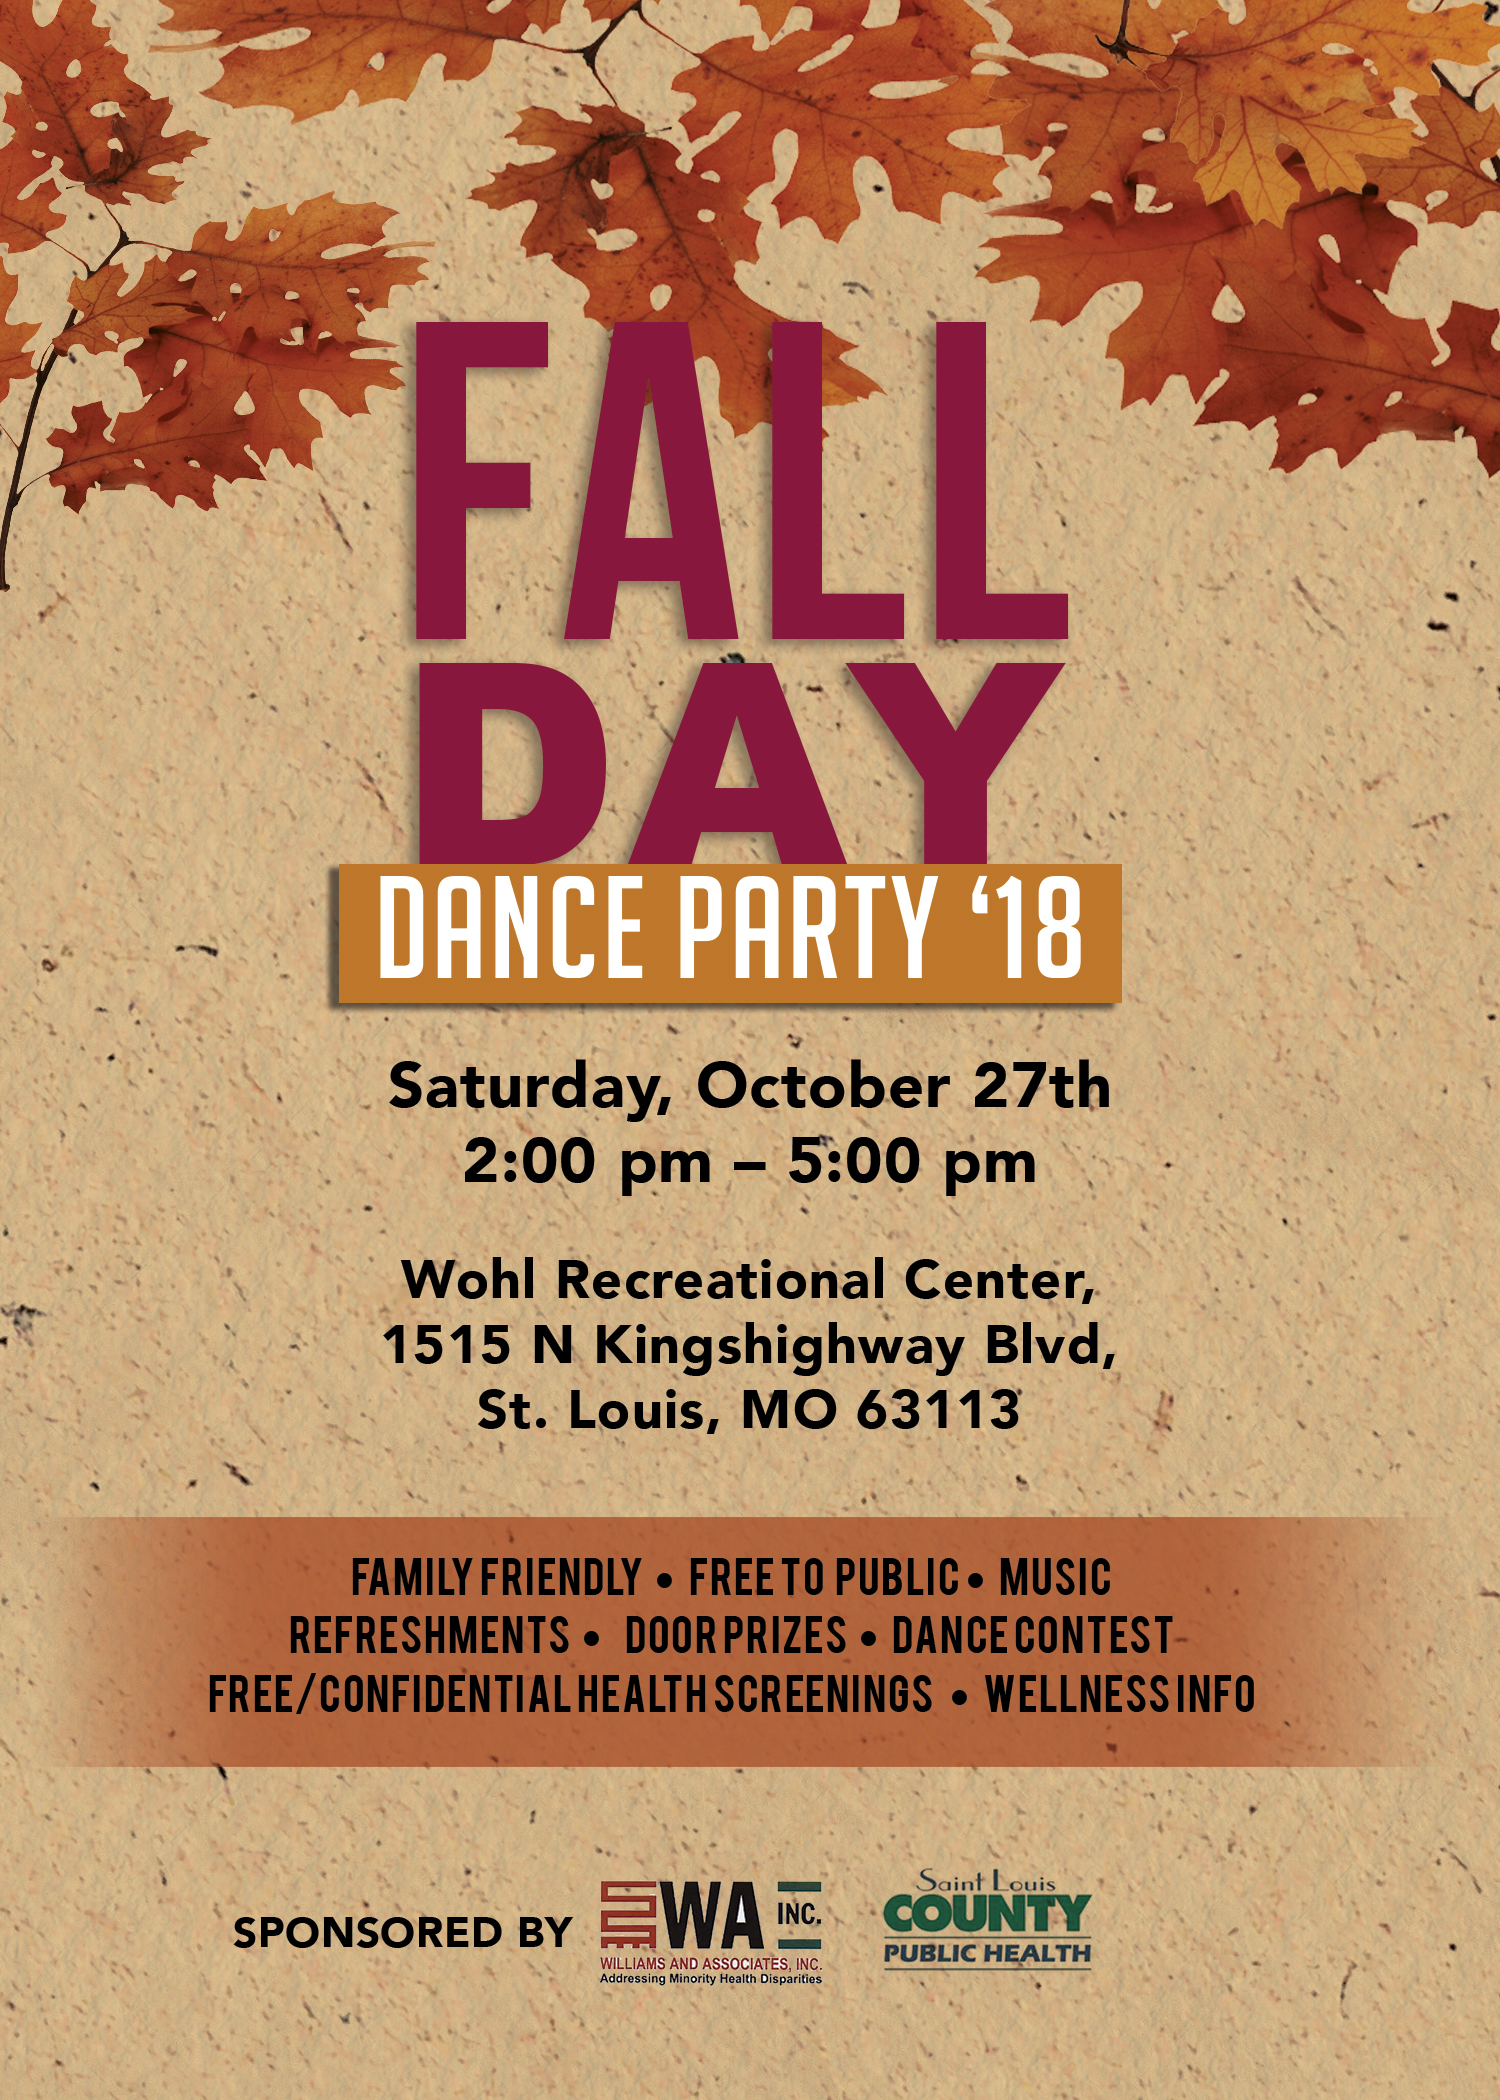 Fall Day Dance Party 2018